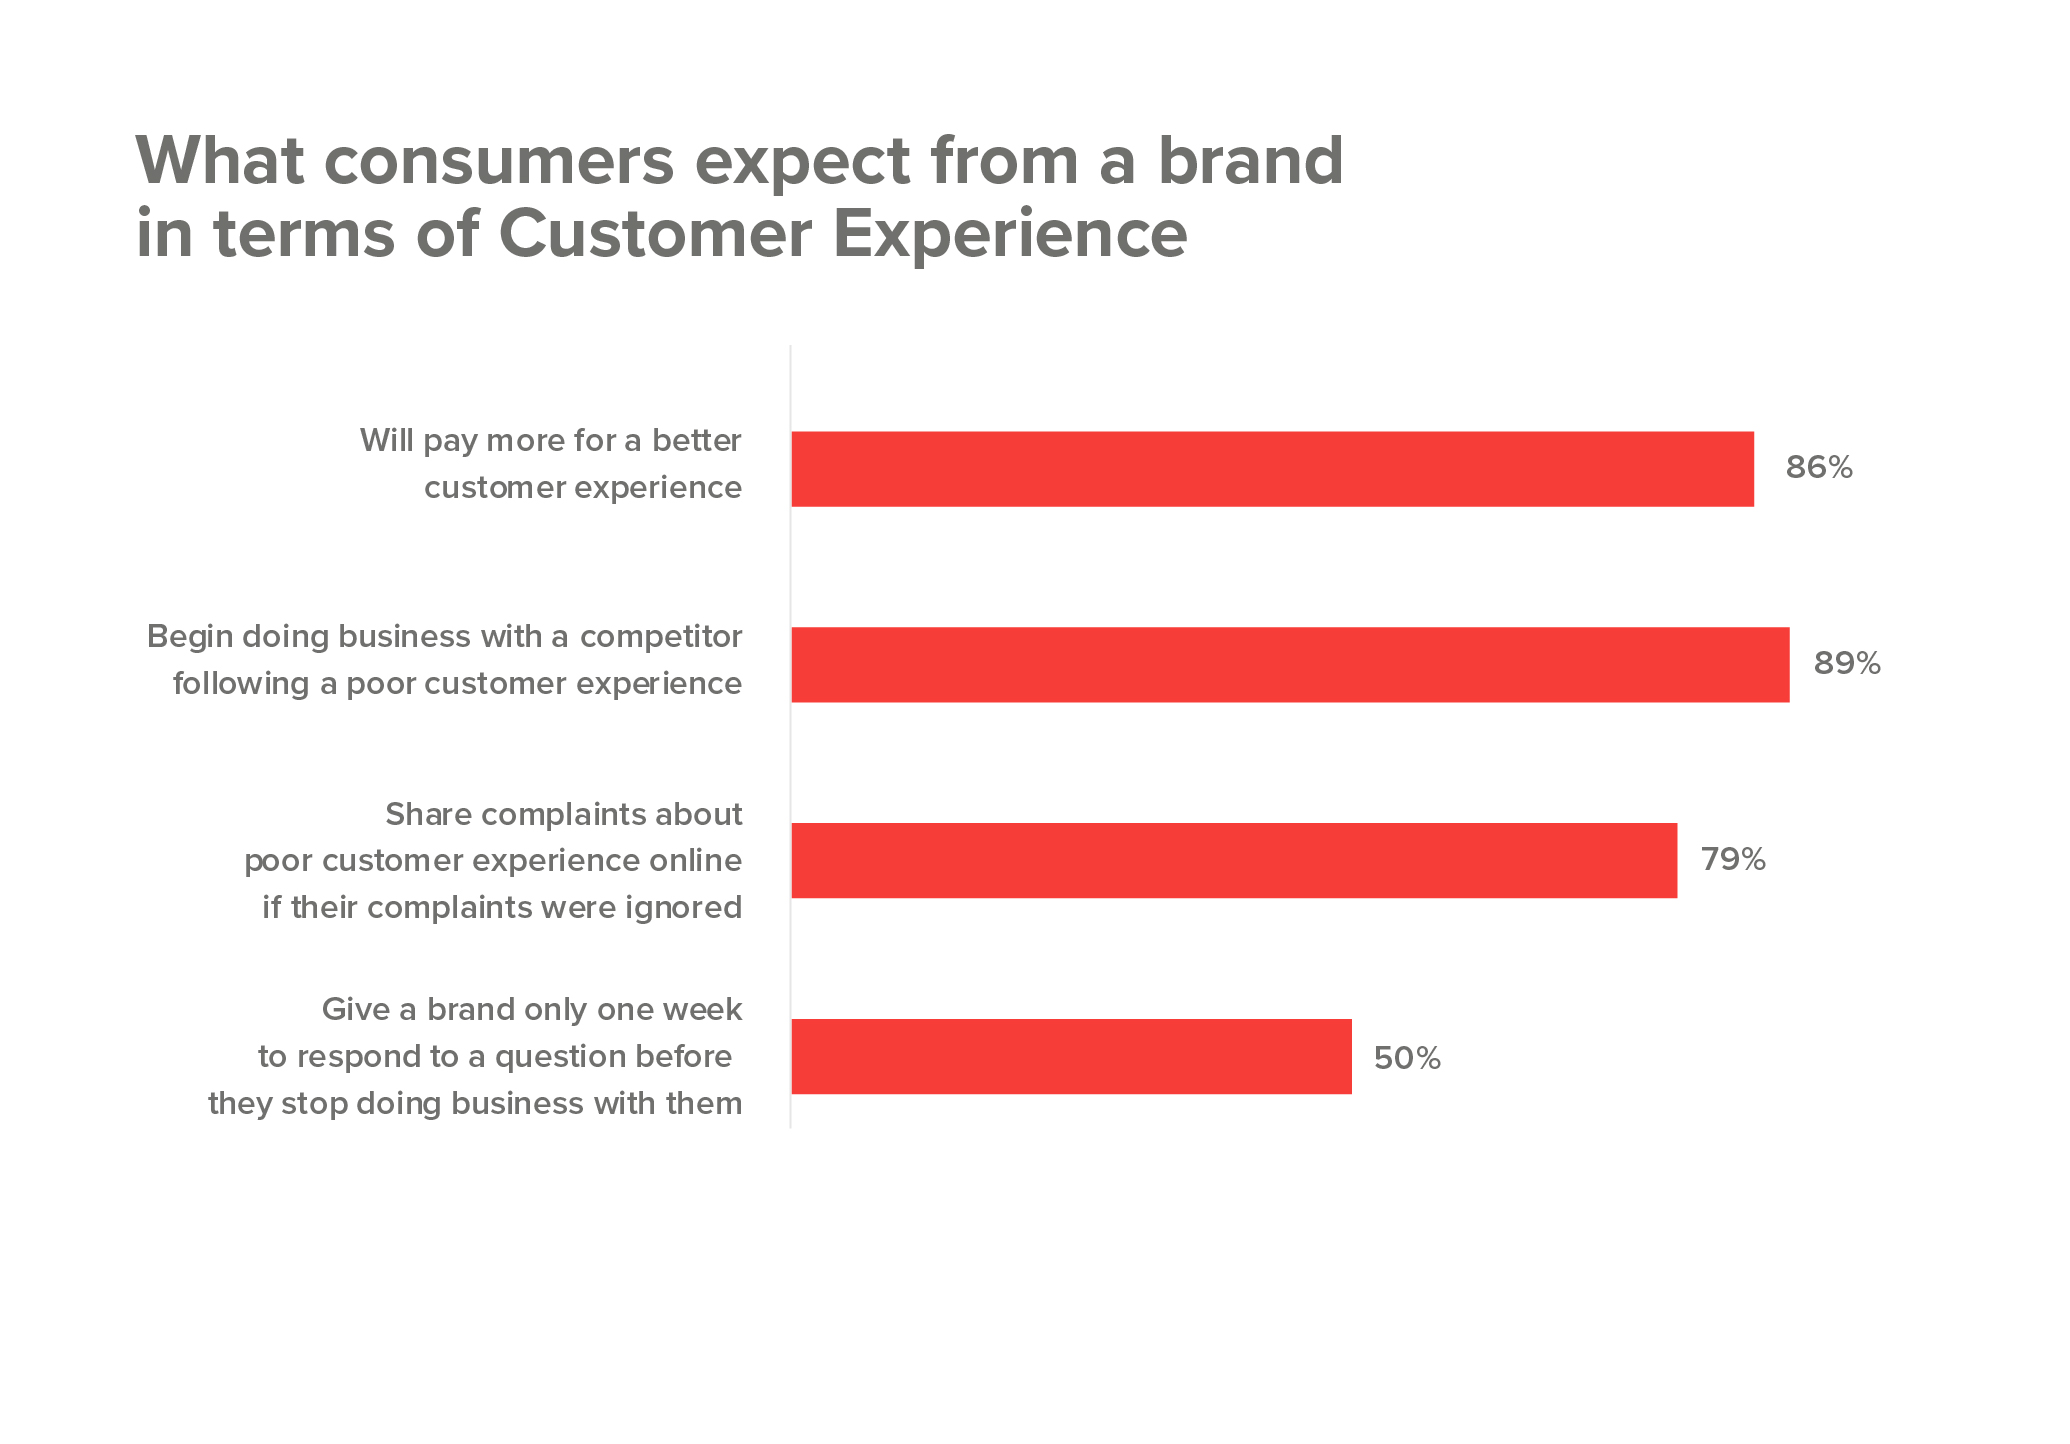 What consumers expect from a brand in terms of customer experience